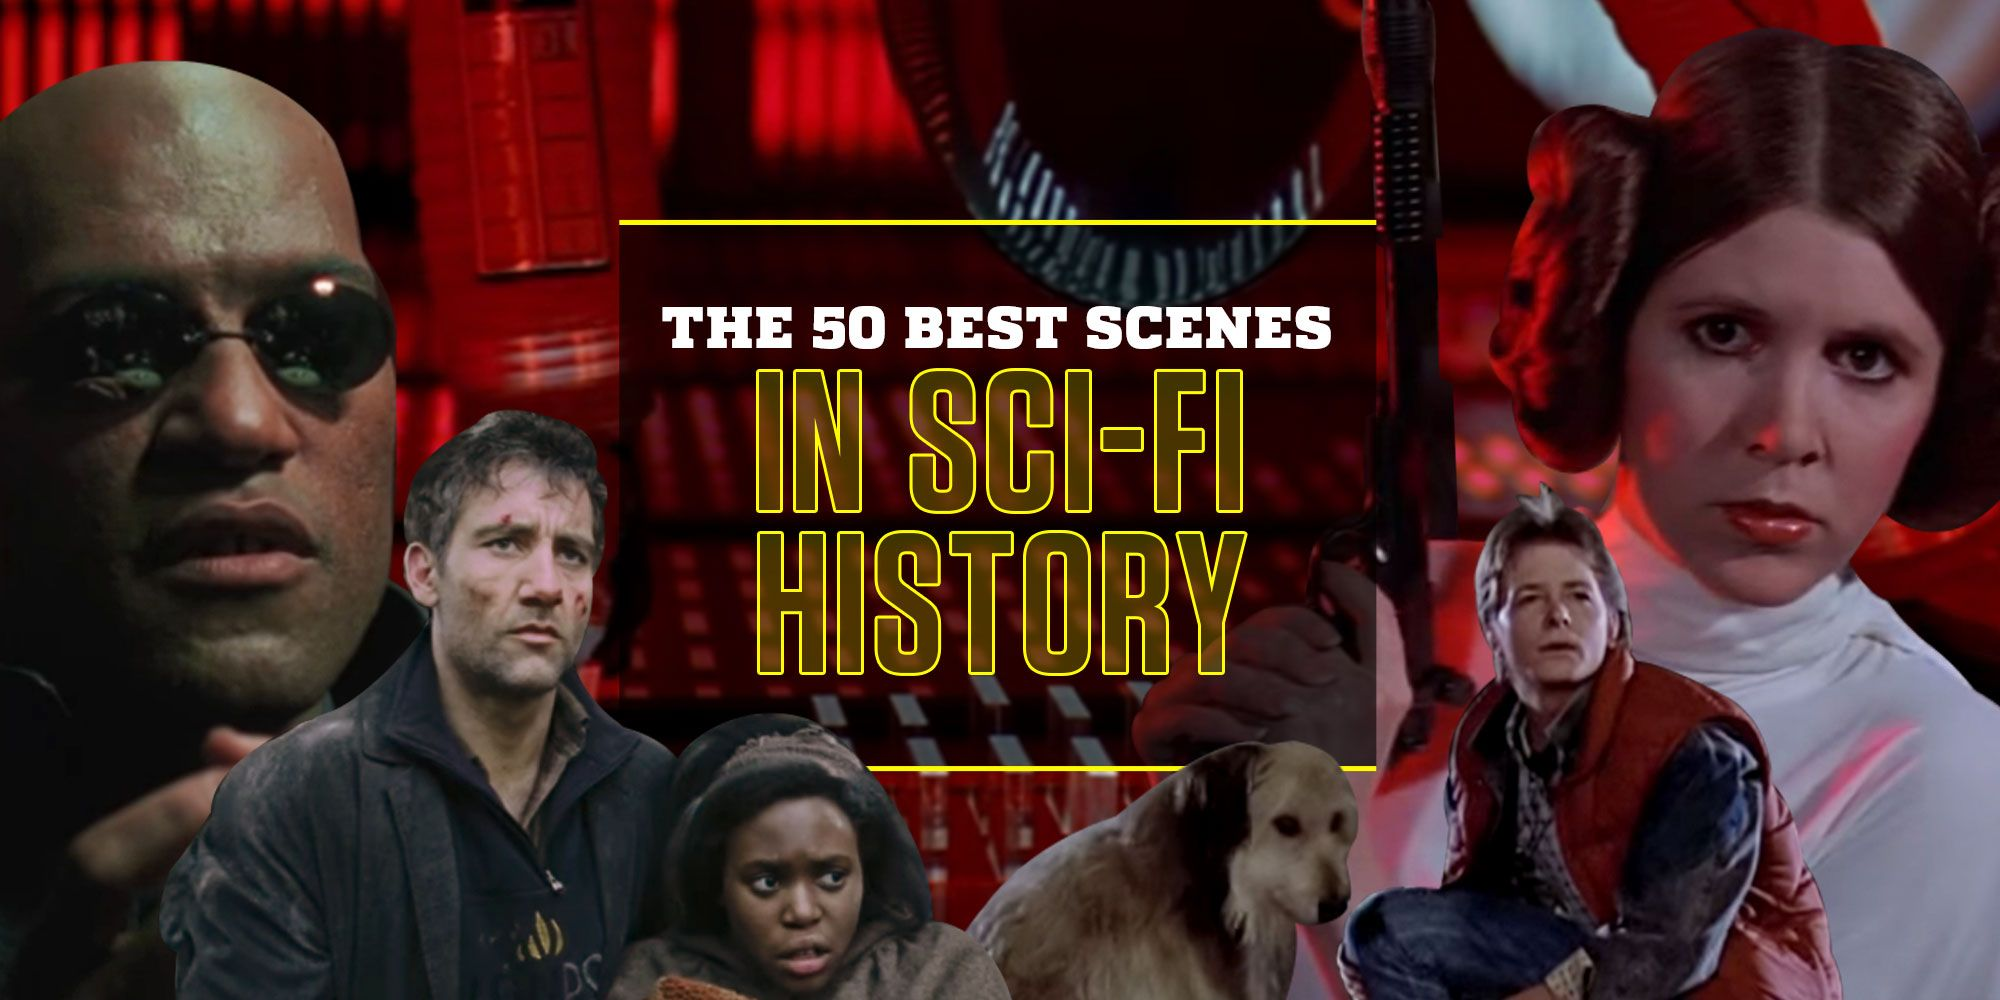 The 50 Best Moments in Sci-Fi History